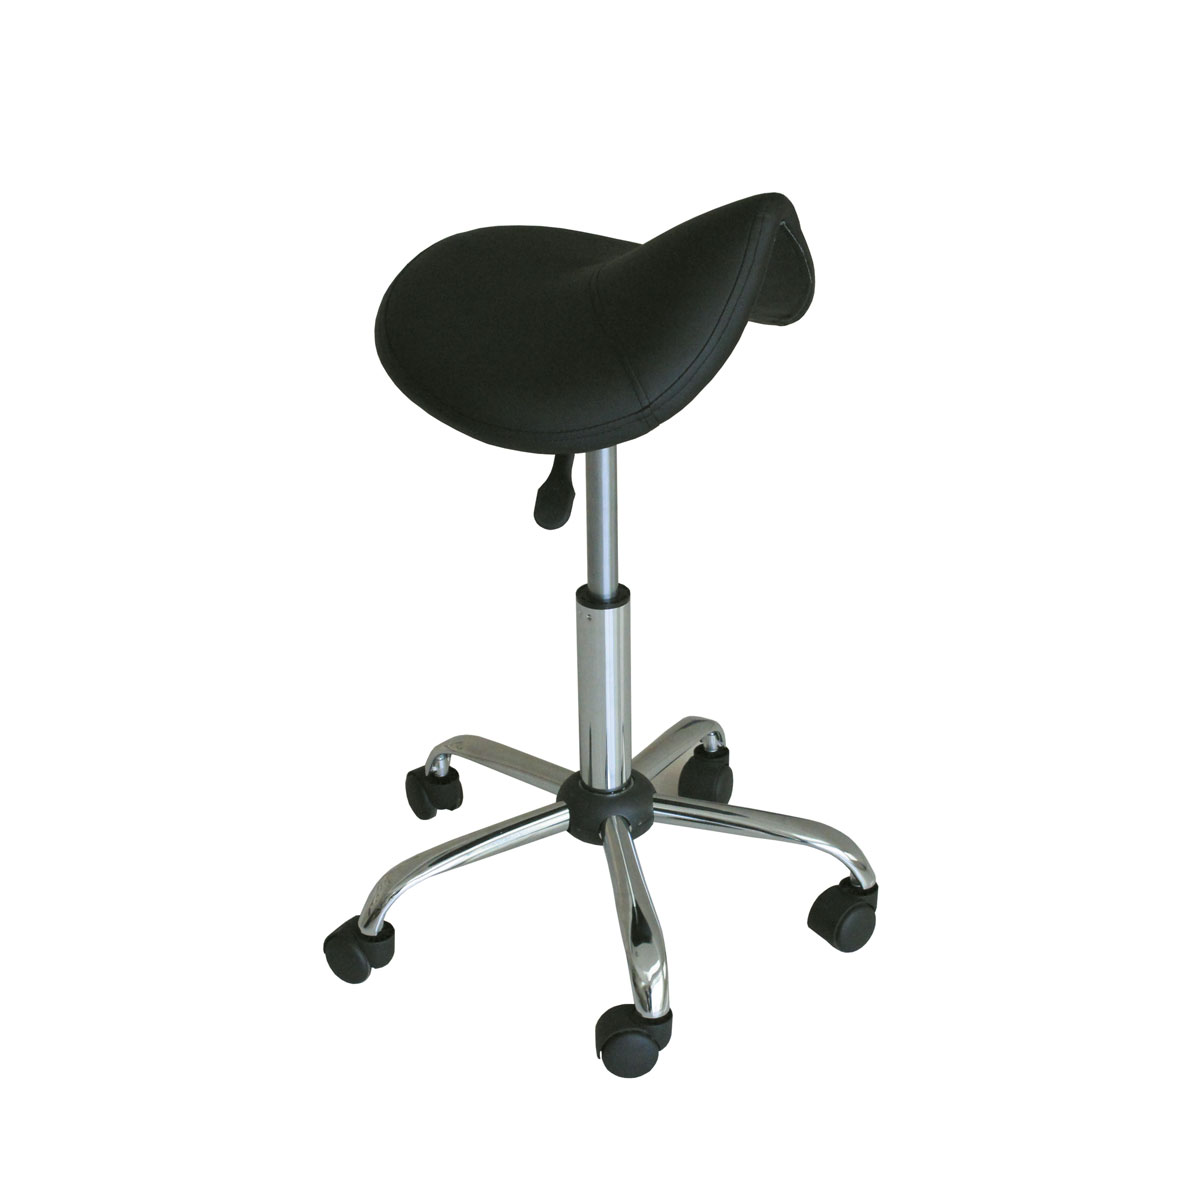 massage pro saddle stool black - Saddle Stools